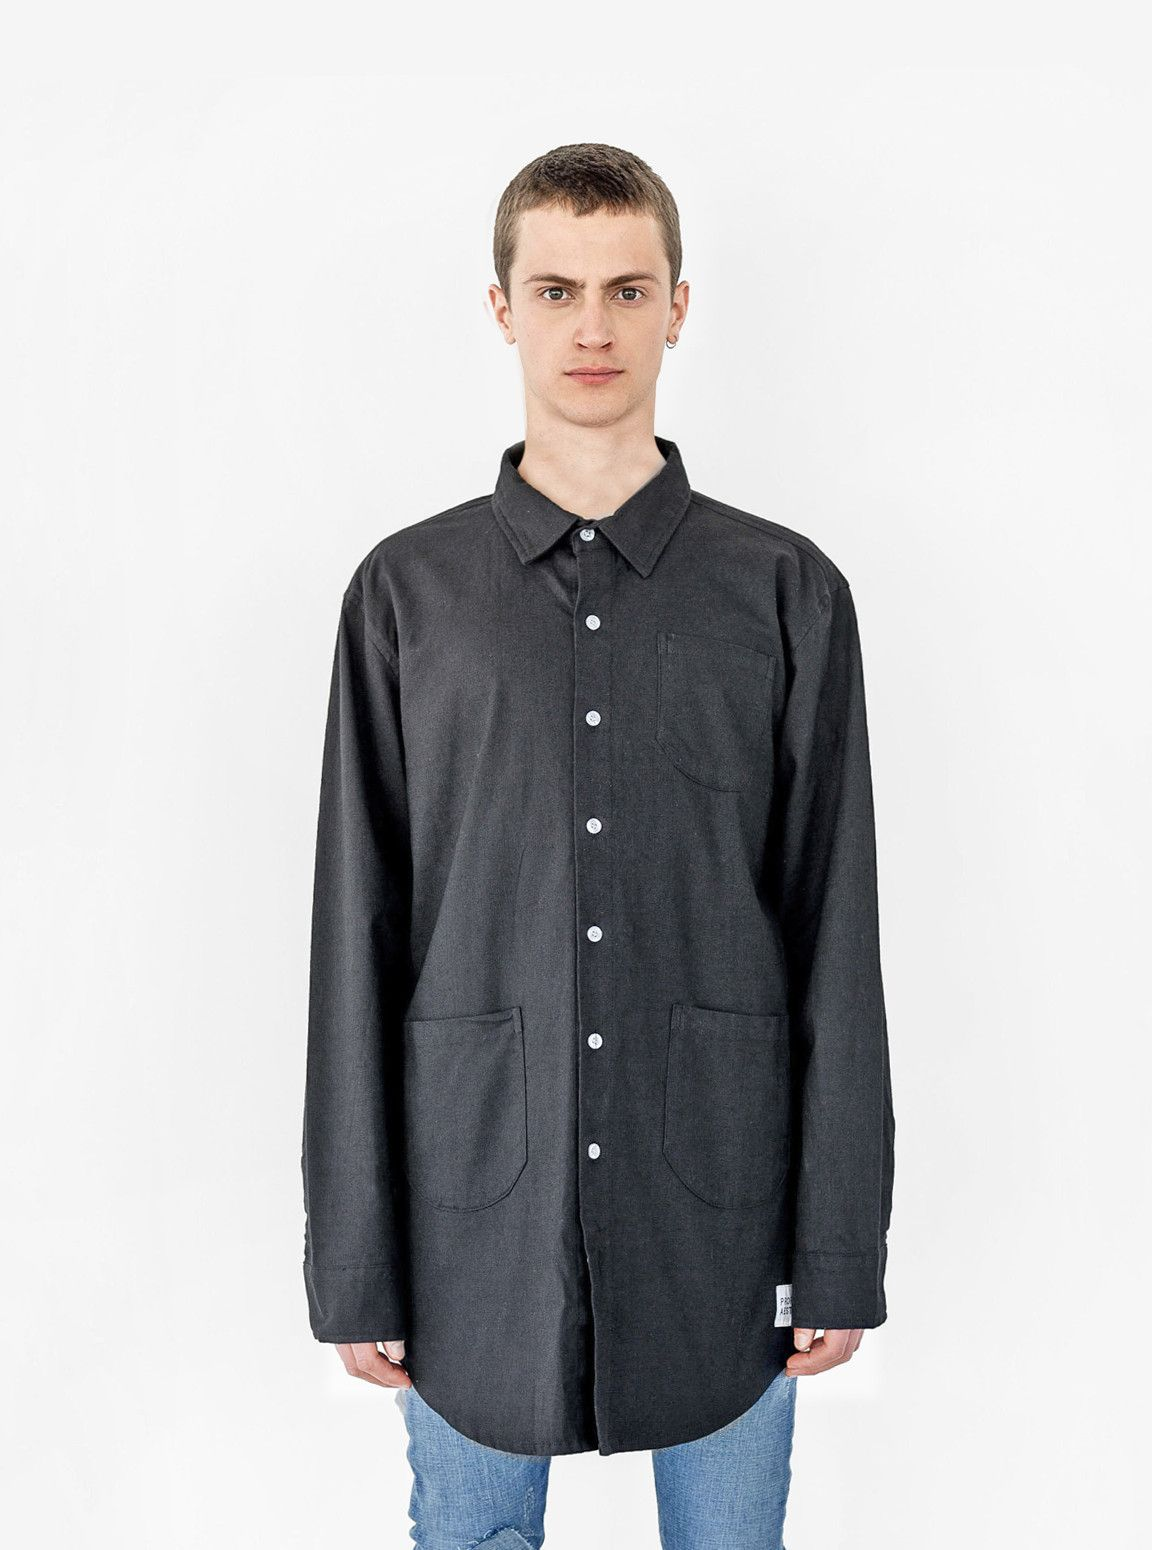 Elongated Button Down Canvas Shirt in Black | Shirts, Gardens and ...